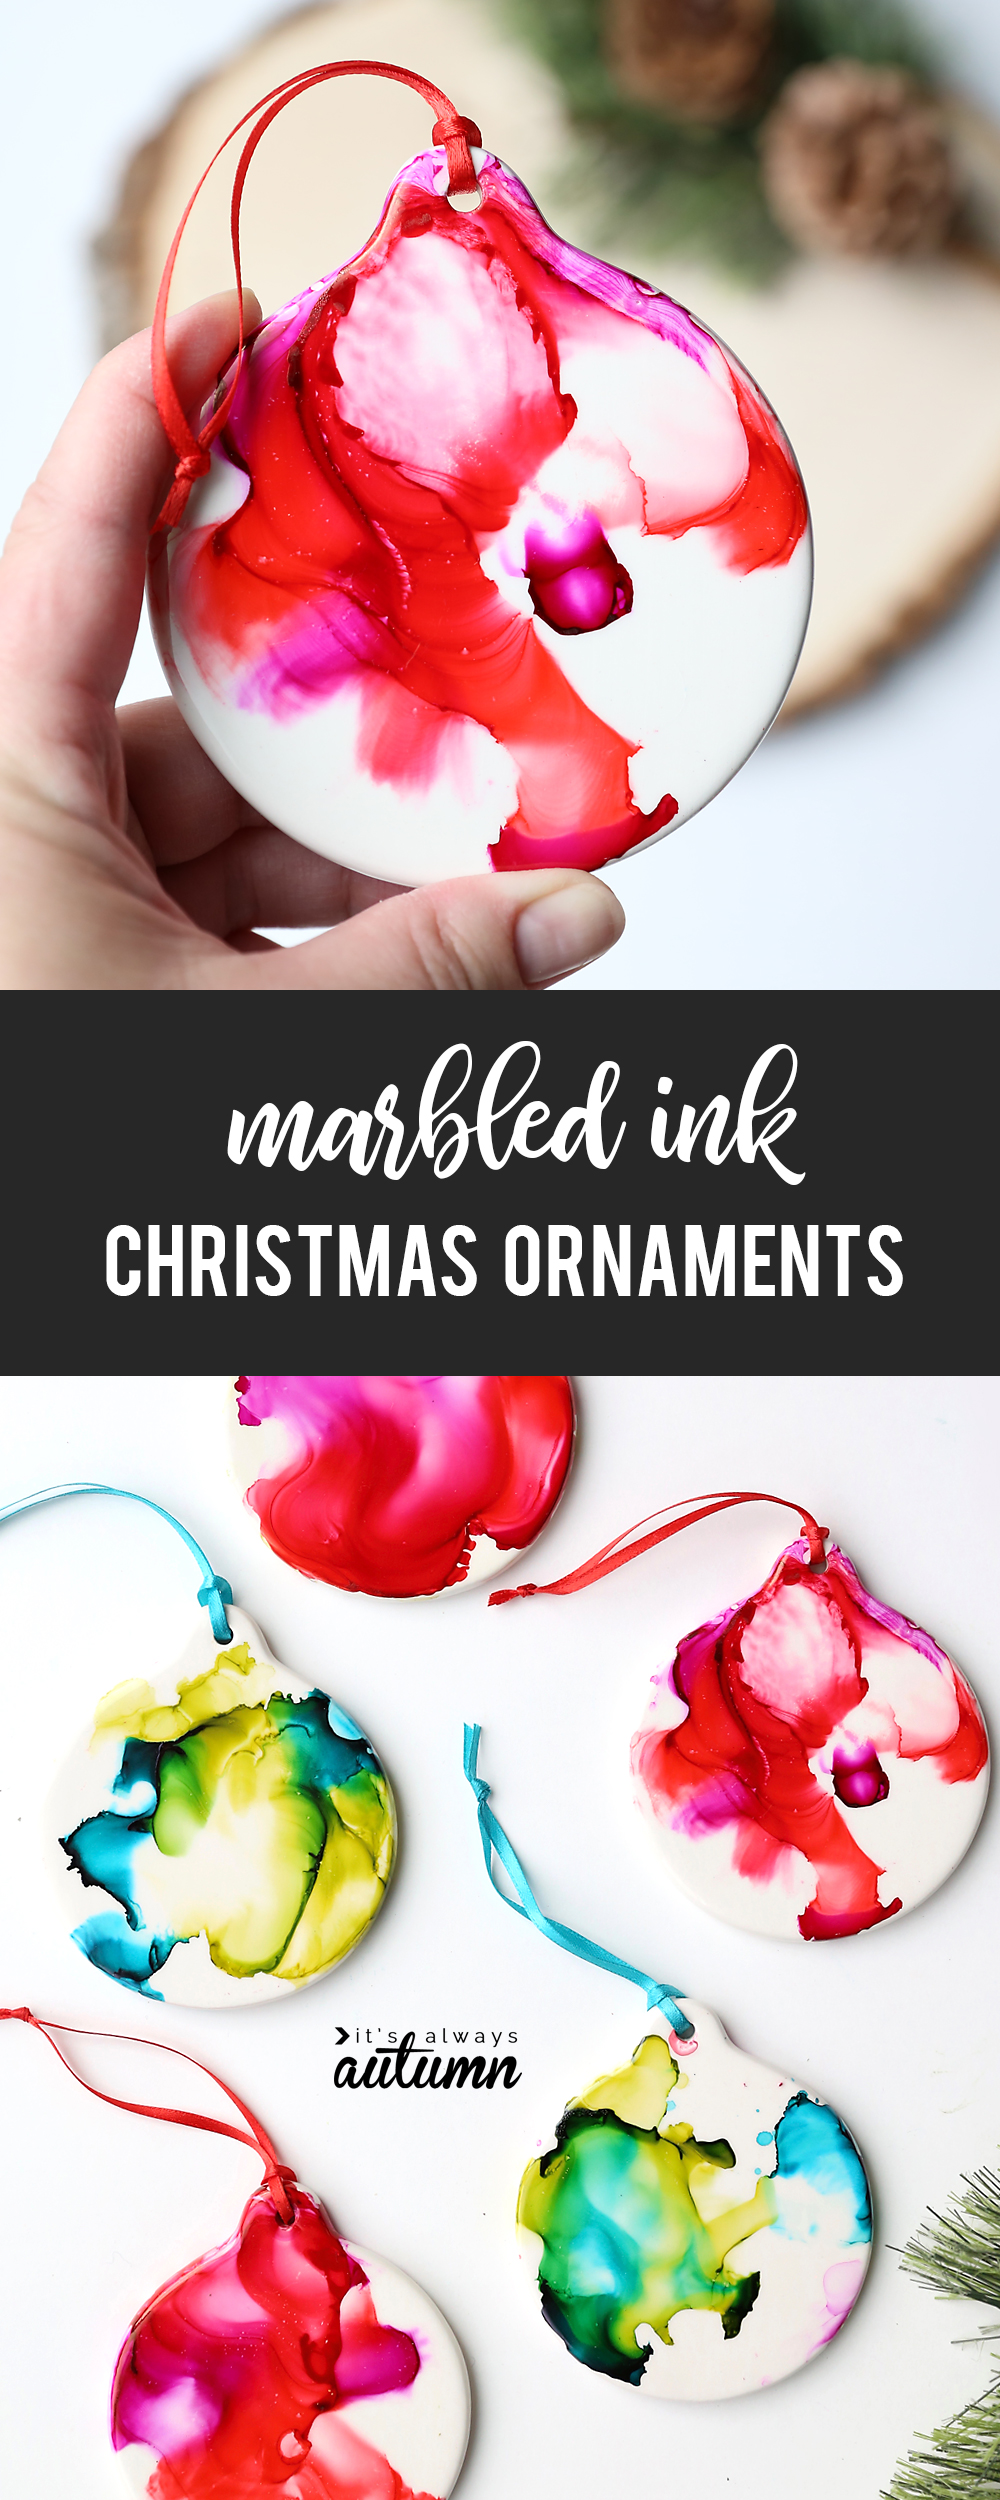 Marbled ink Christmas ornaments